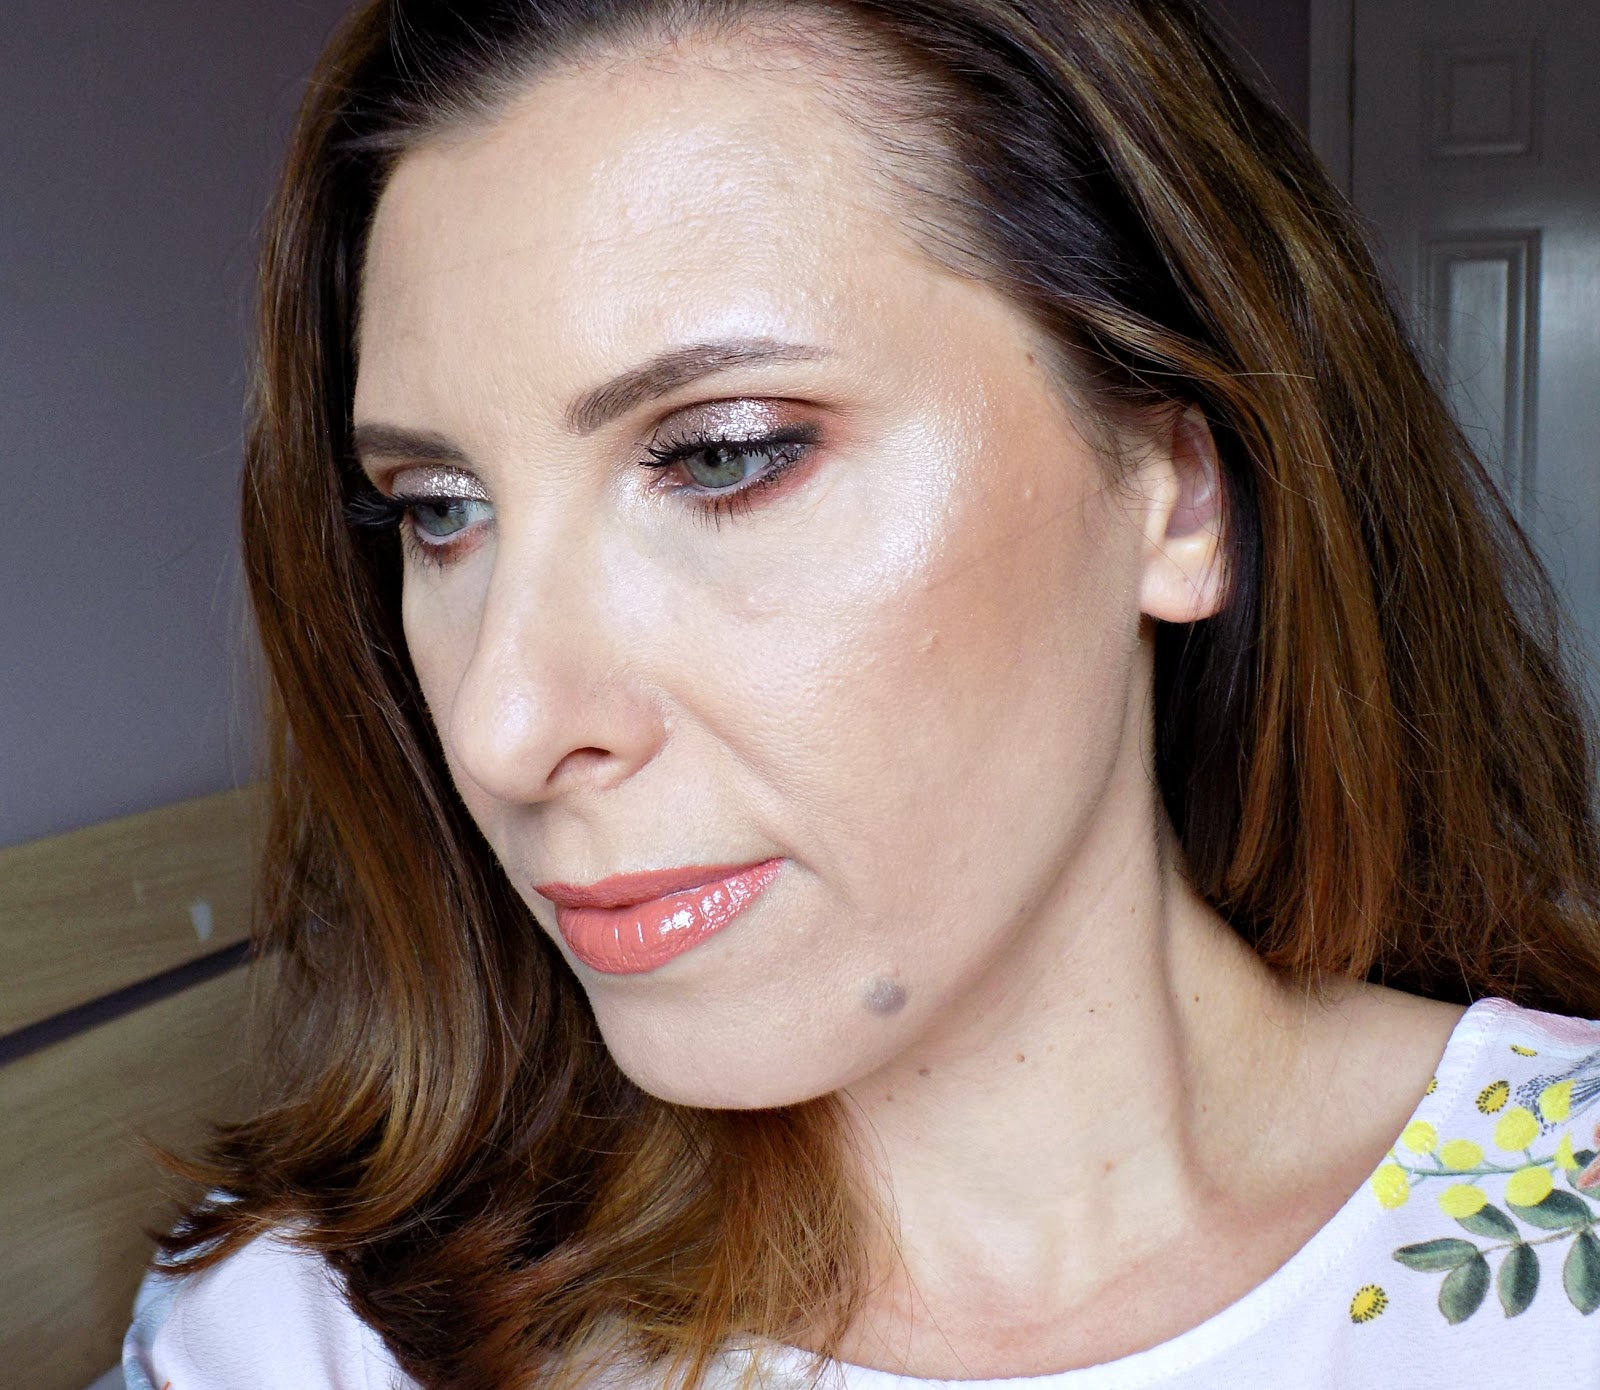 Makeup look using Pixi Liquid Fairy Lights and Pixi highlighters